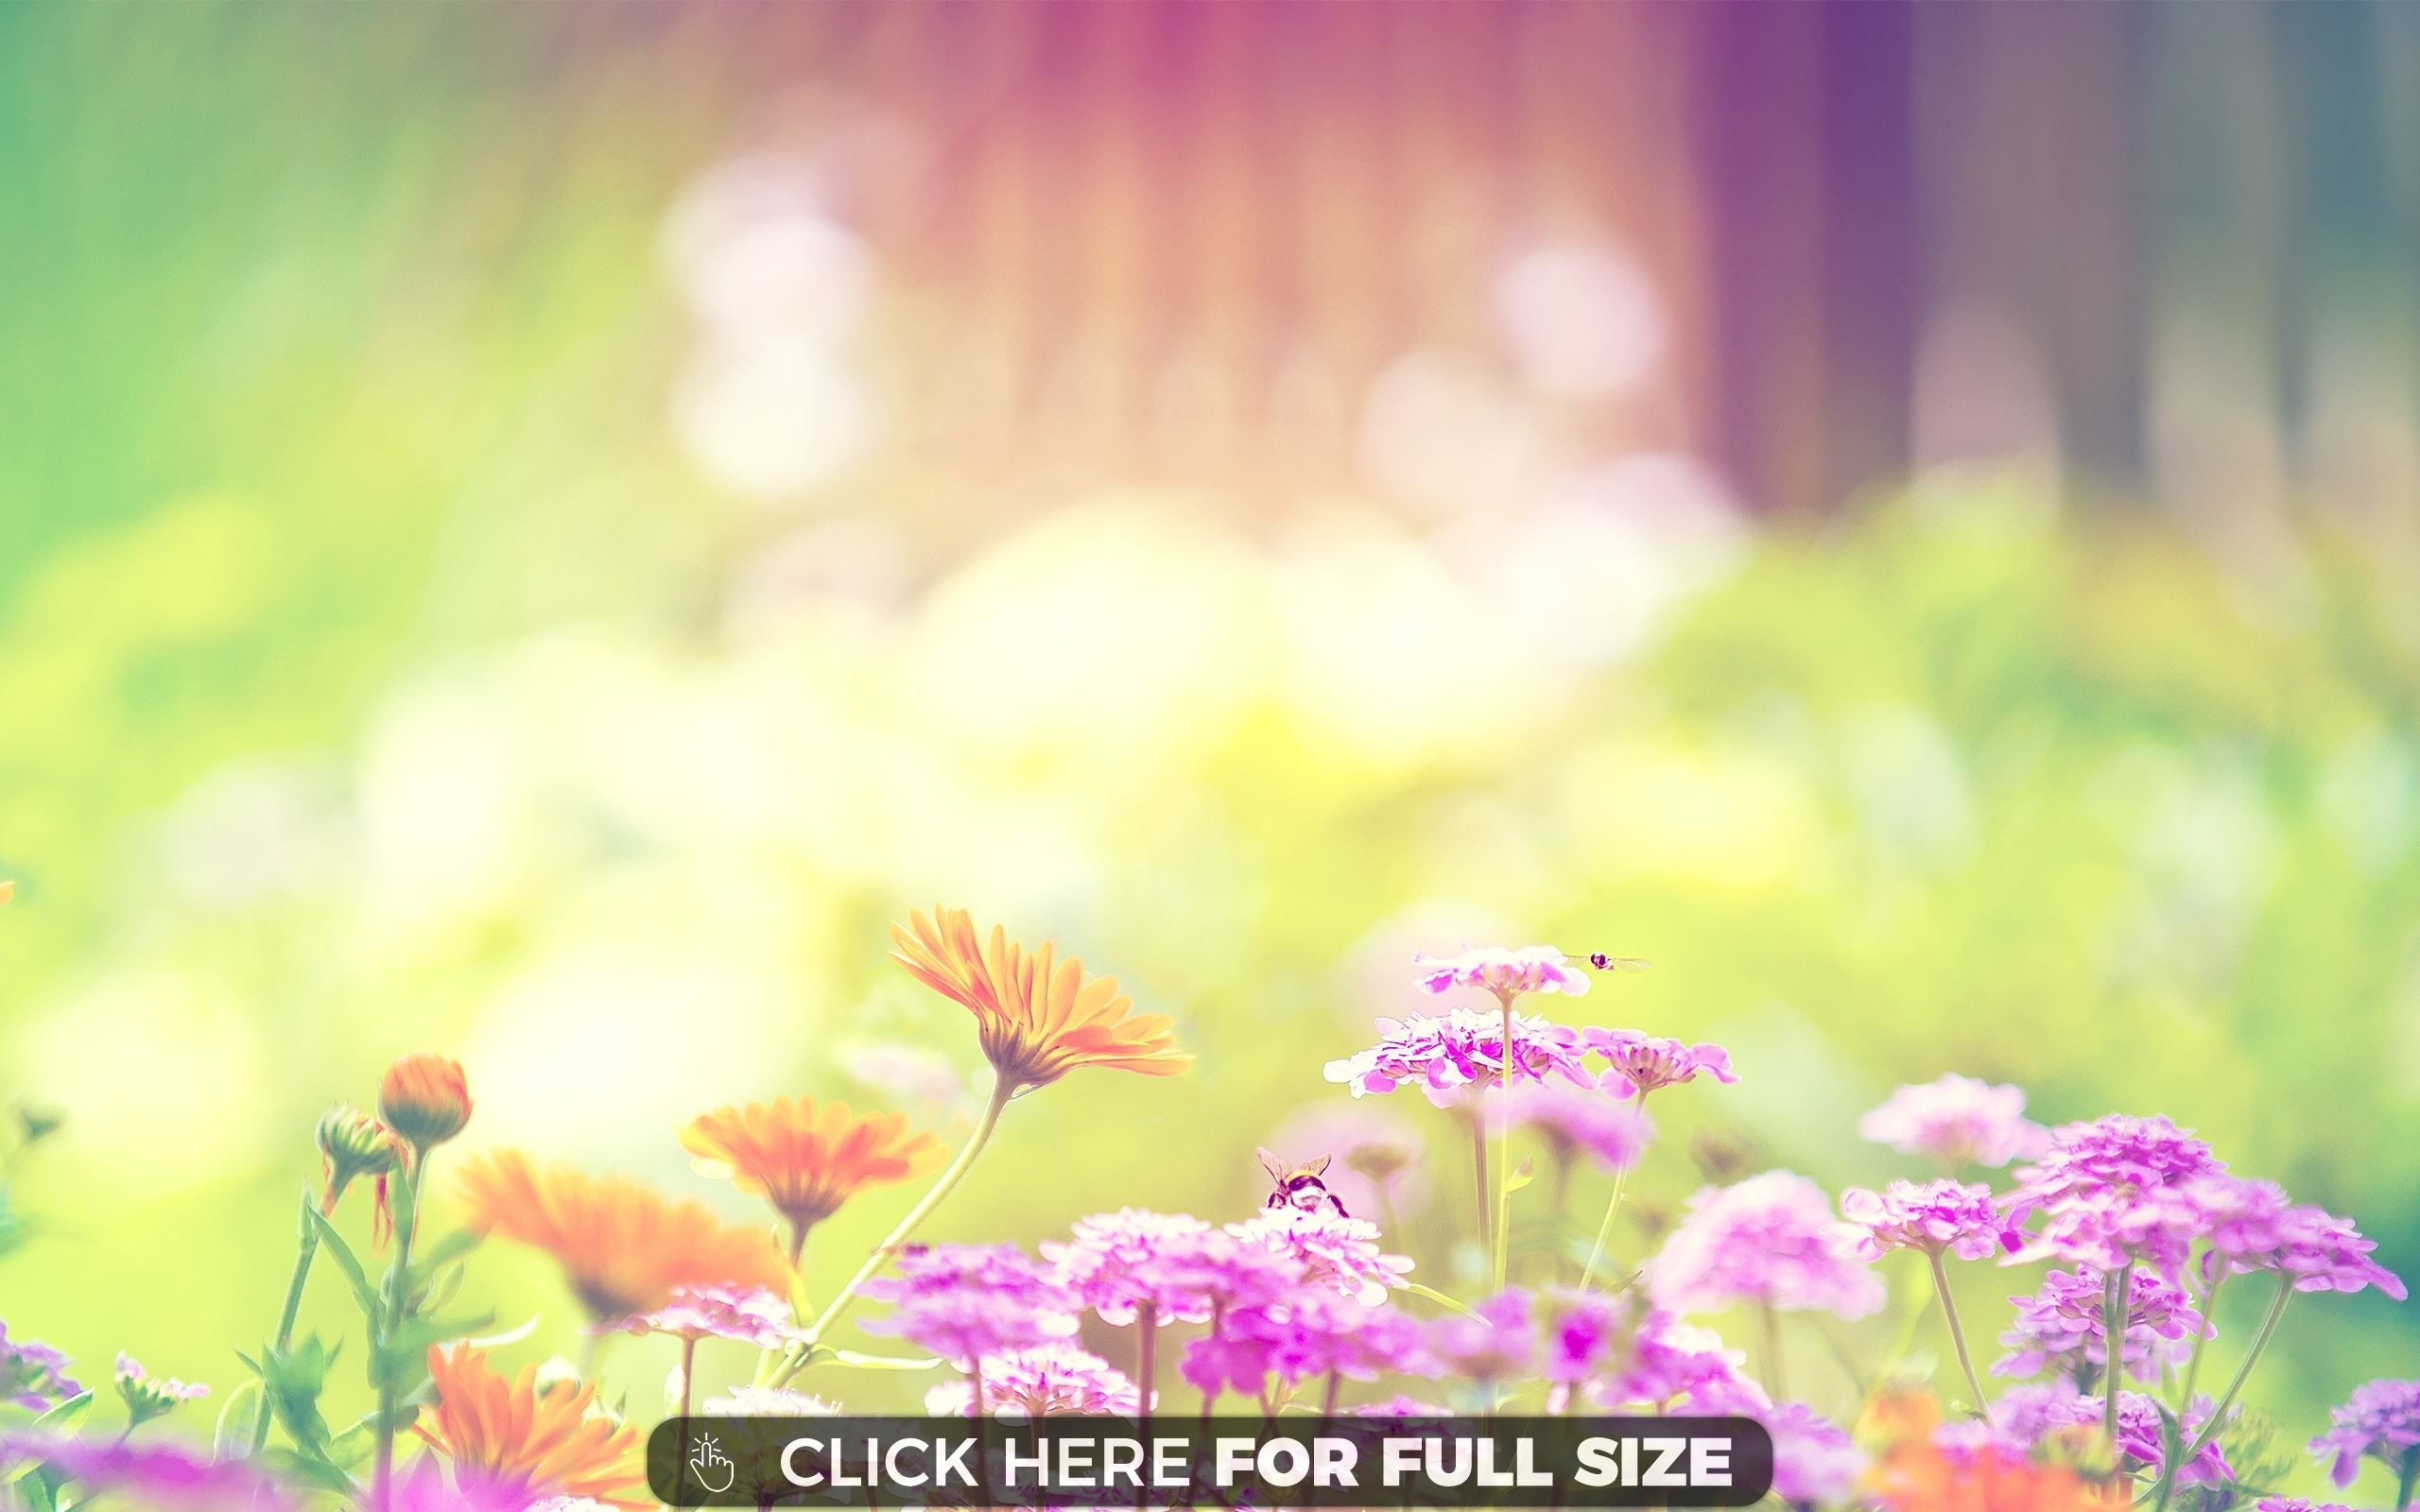 daisy twins immortality photography image flower wallpaper